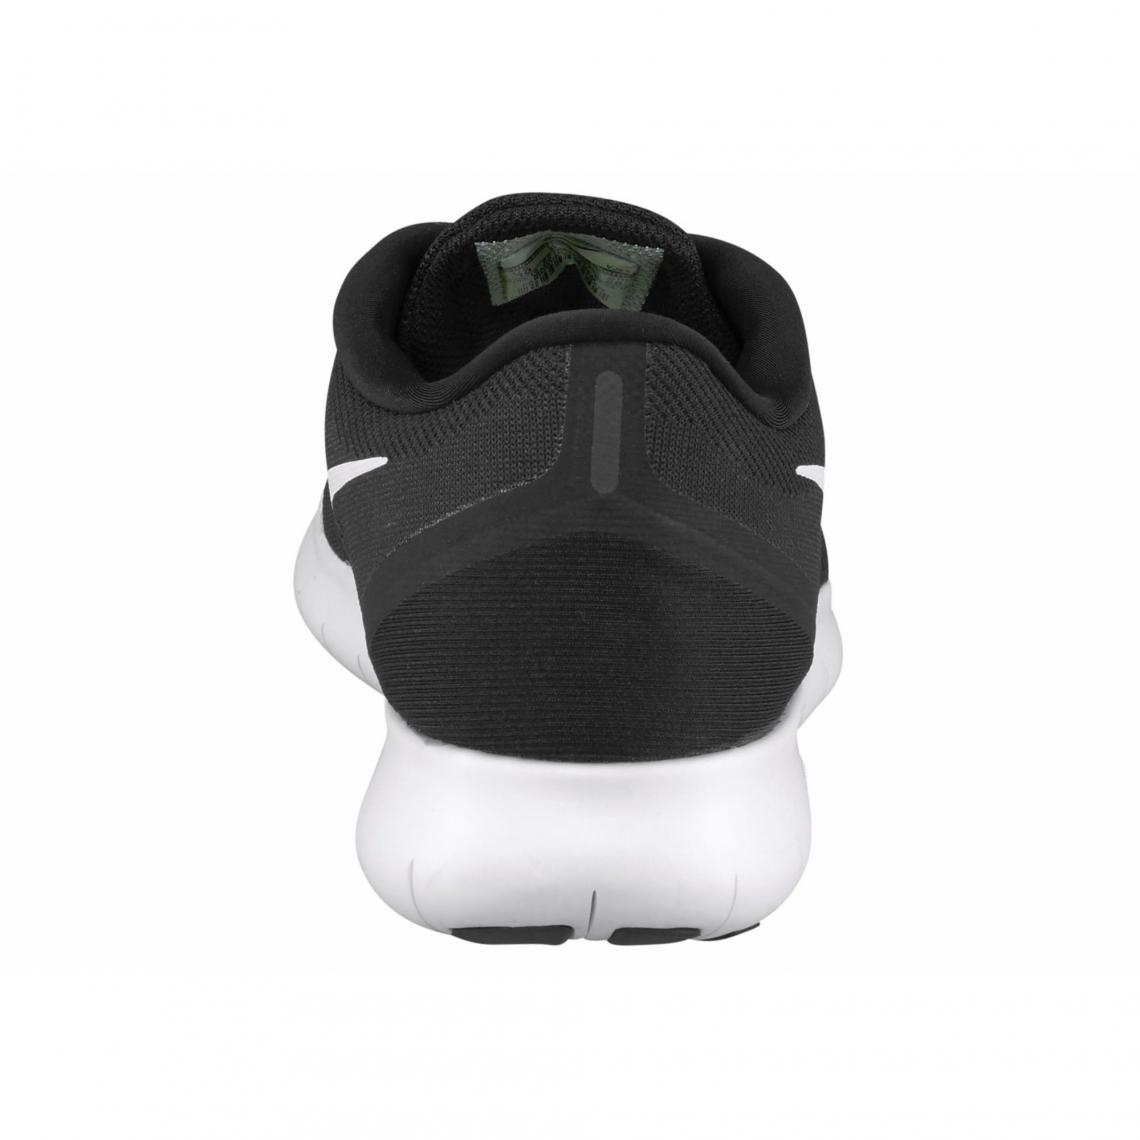 the latest aa67e 65a58 sale nike free rn 2018 chaussures de running homme gris gris loup blanc  13d12 9dfde  low cost toutes les chaussures nike be5c0 d6f5a